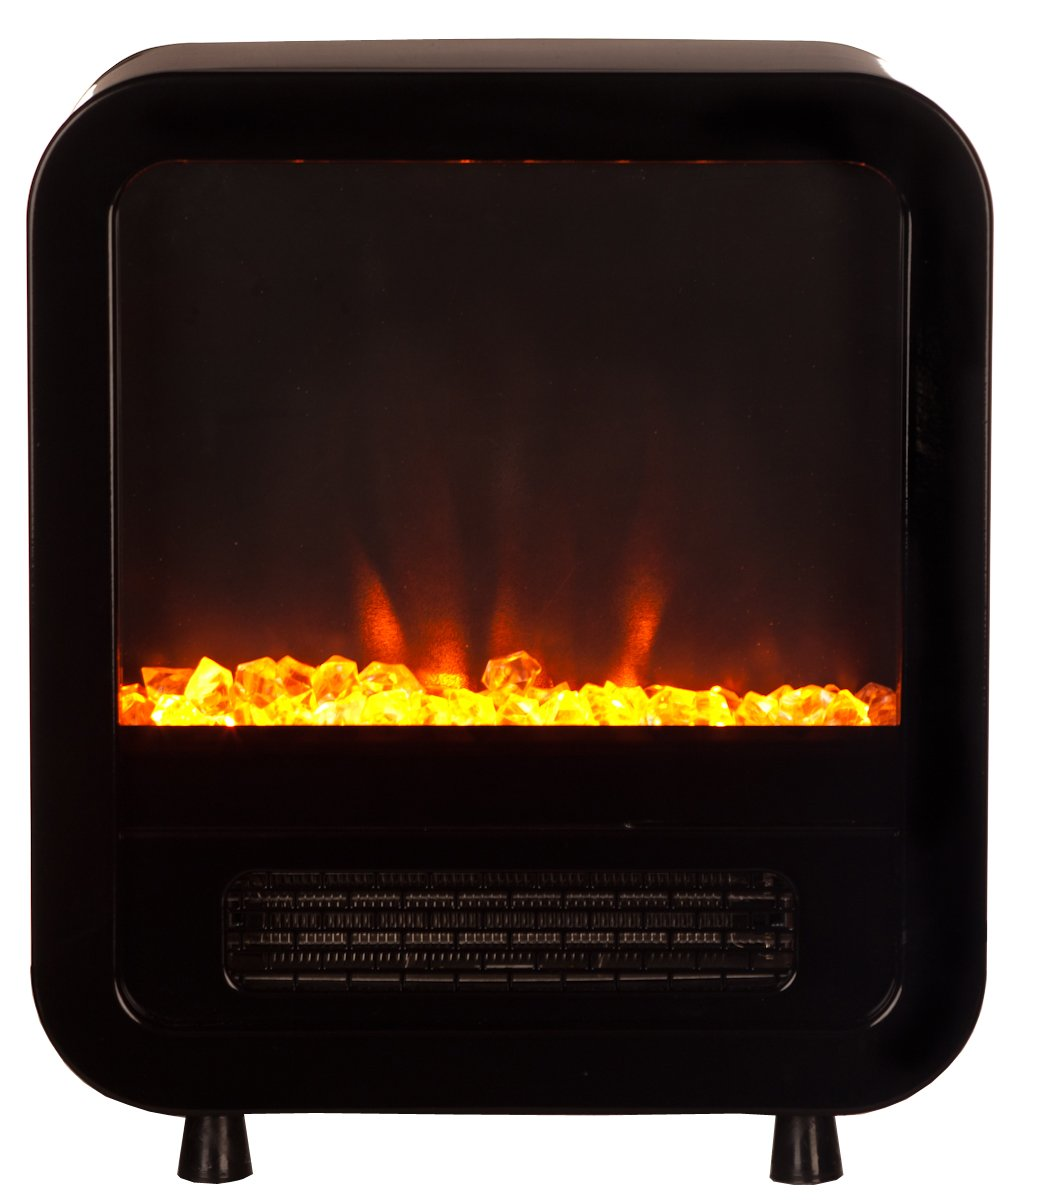 amazon com fire sense 61237 skyline electric fireplace stove